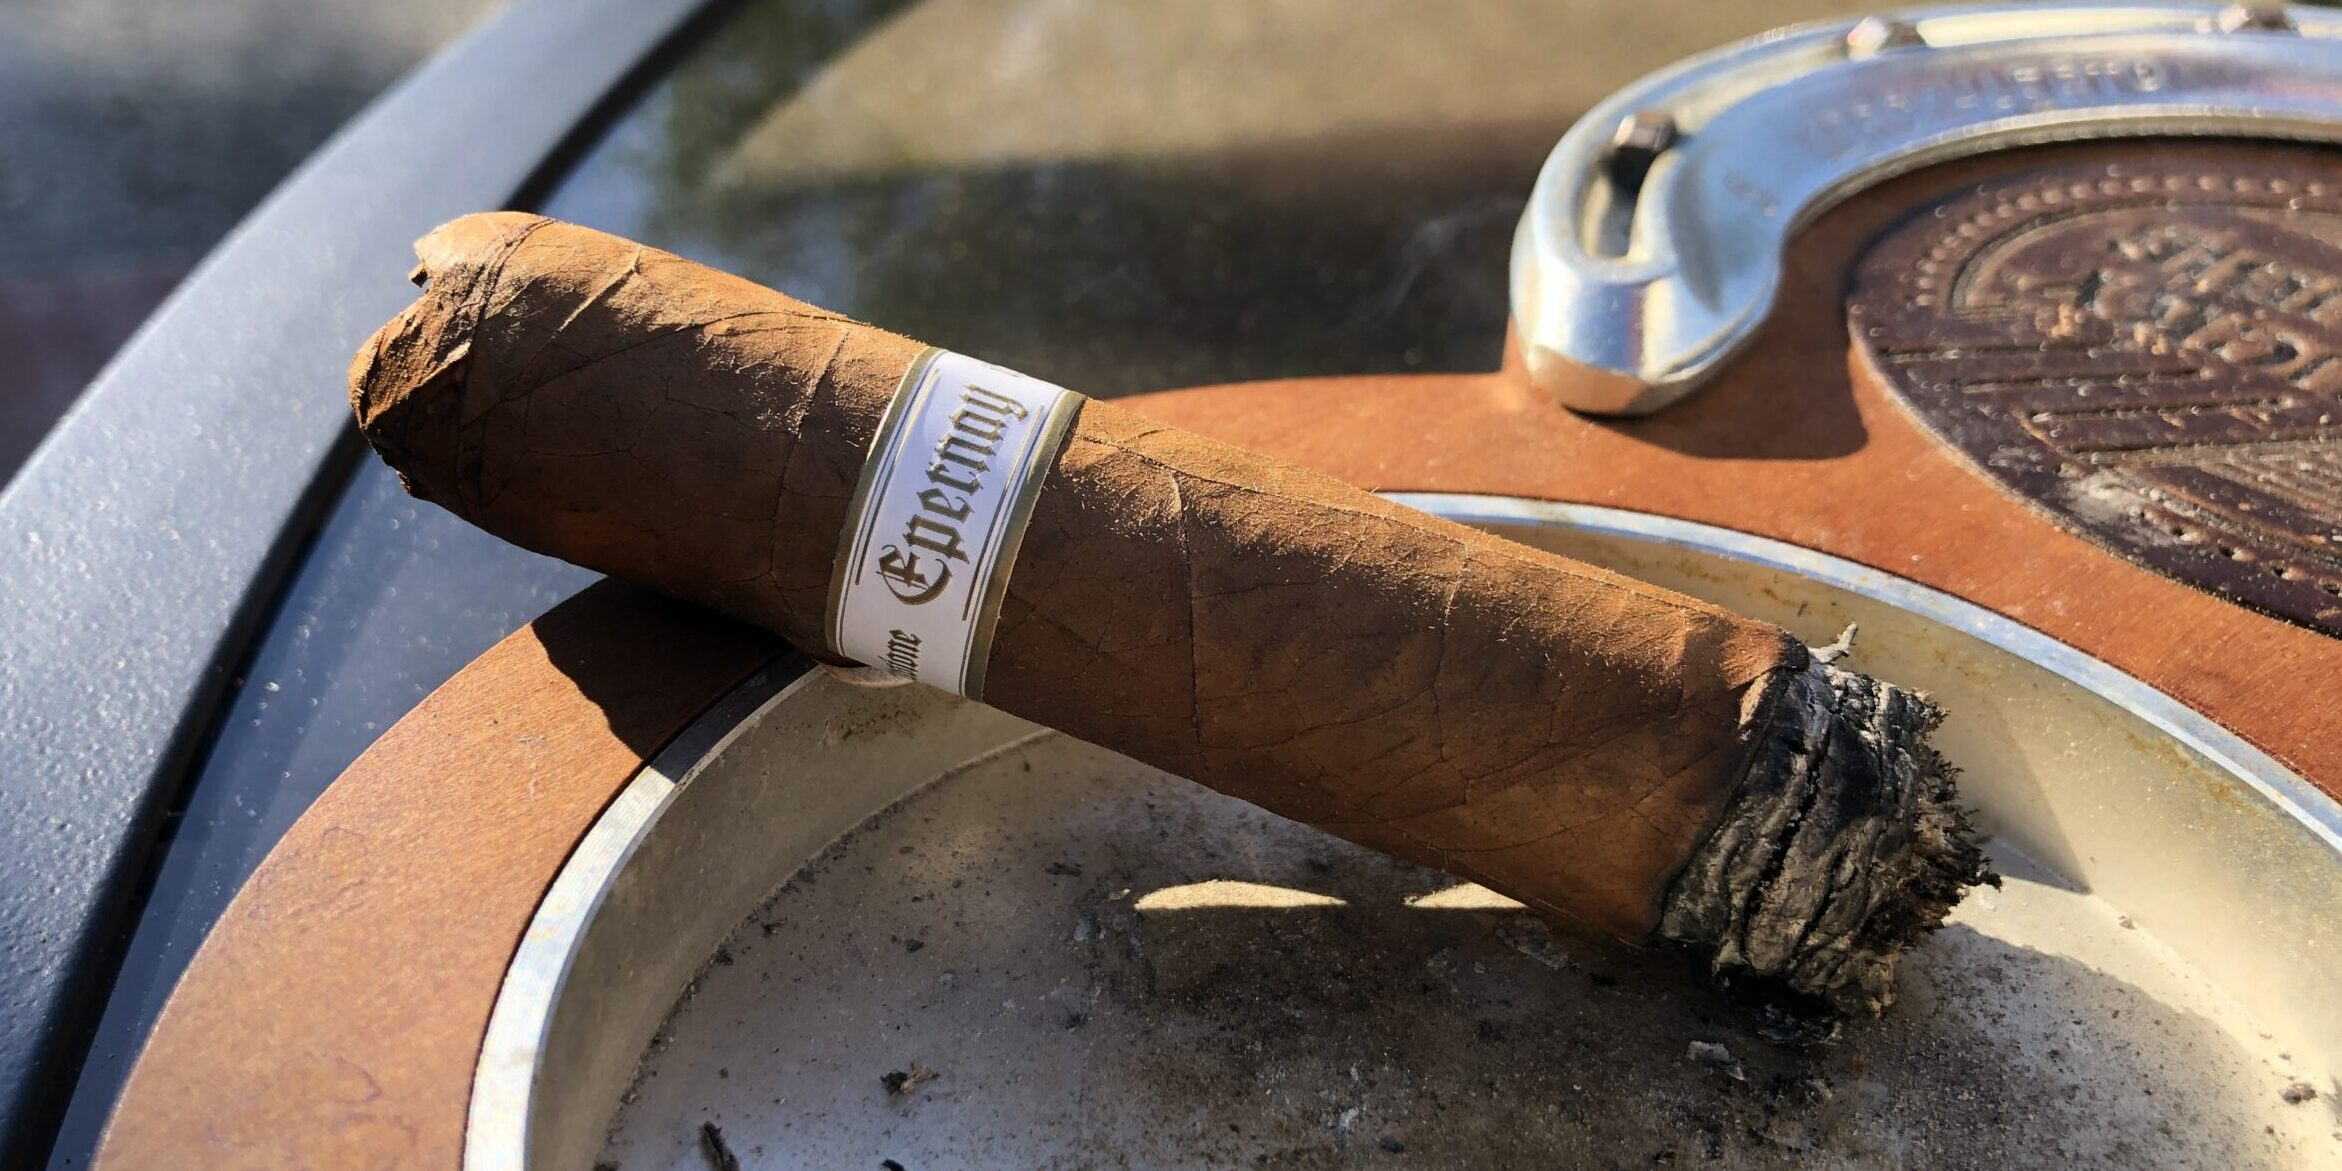 You are currently viewing Illusione Epernay 10th Anniversary D'Aosta Toro Cigar Review